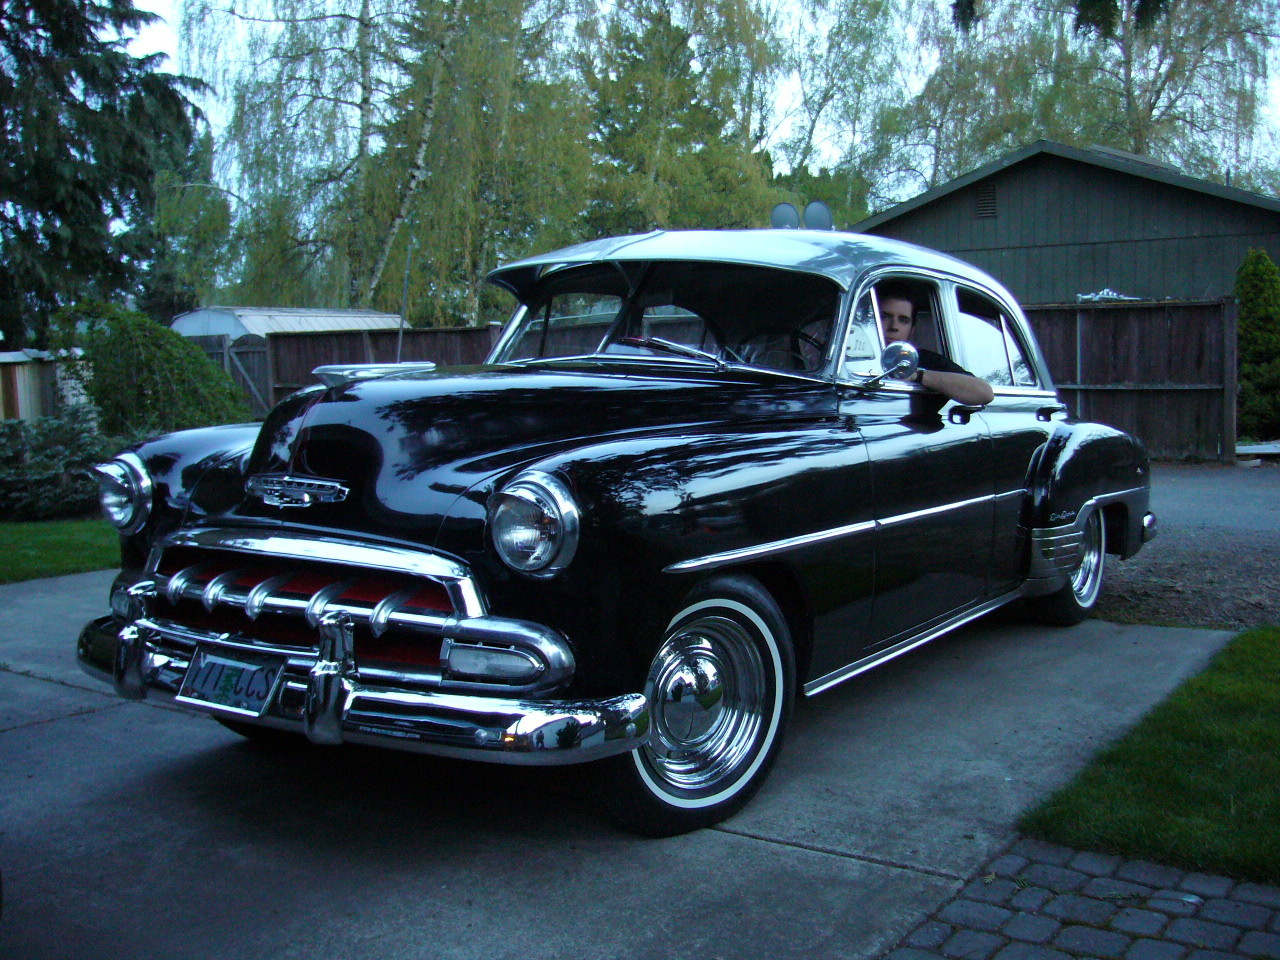 chevrolet deluxe styleline - photo #30